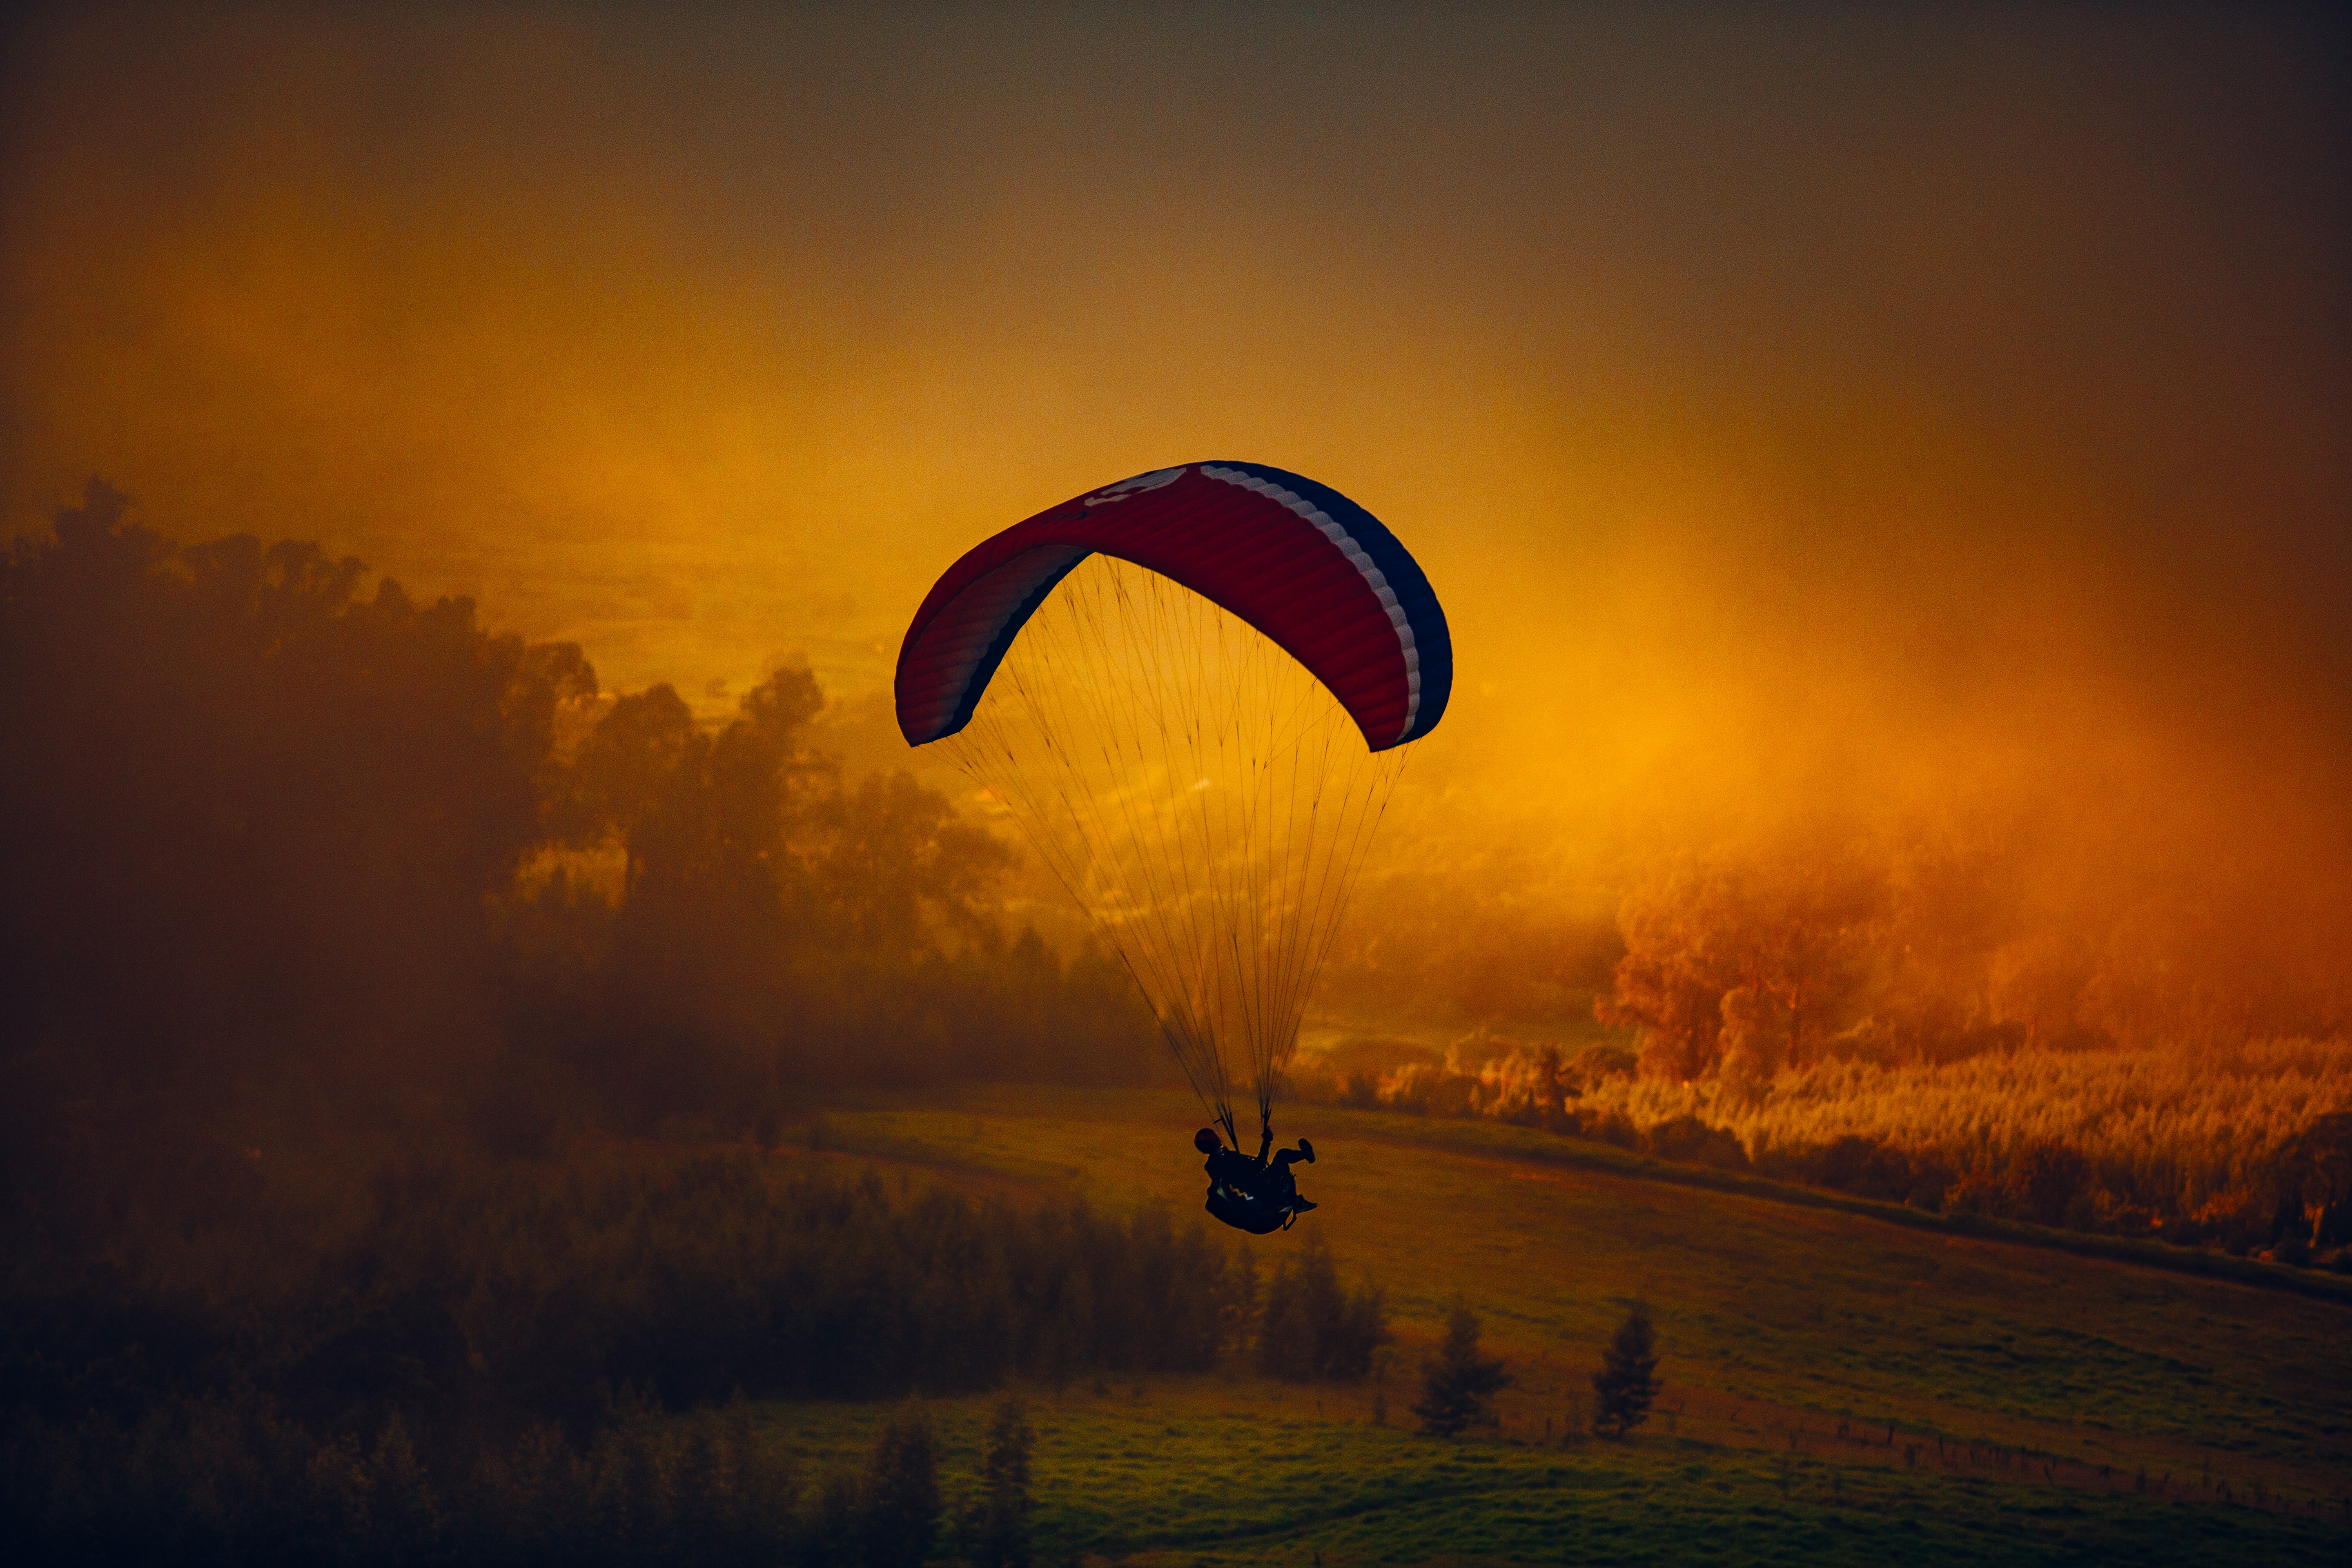 A paraglider in the air against orange-hued clouds over the countryside